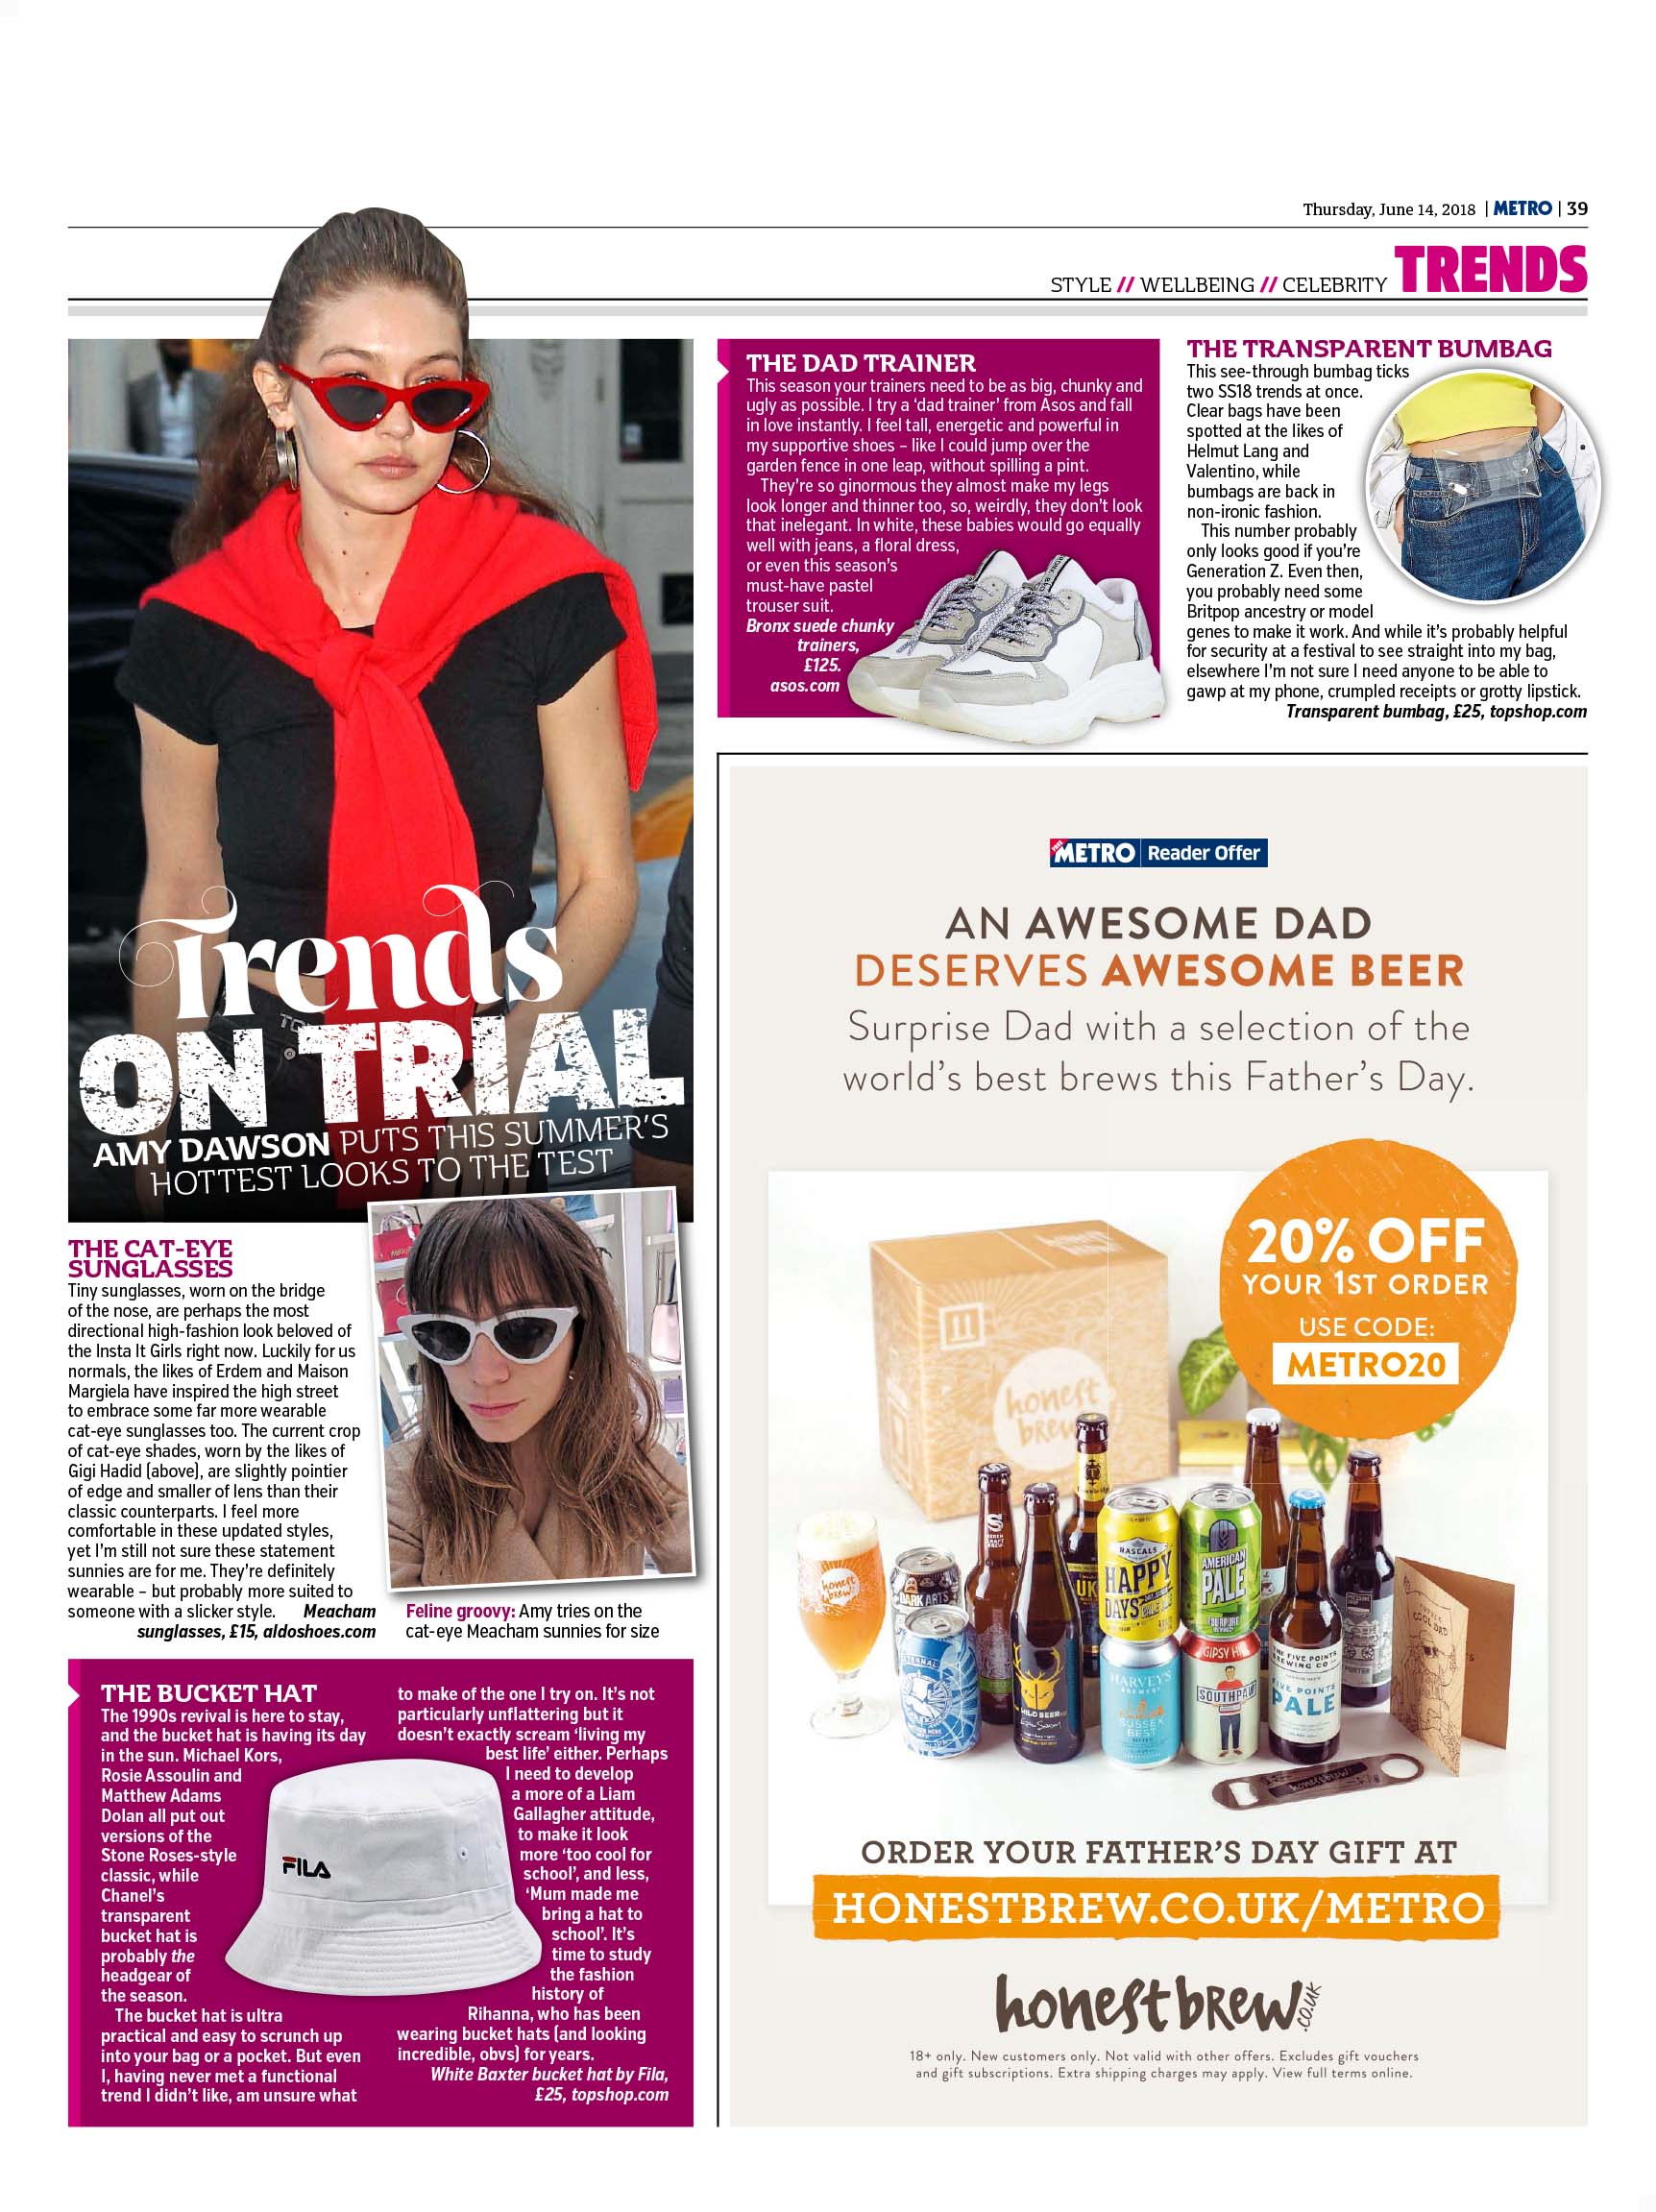 Trends On Trial (Metro, 14th Jun 2018)